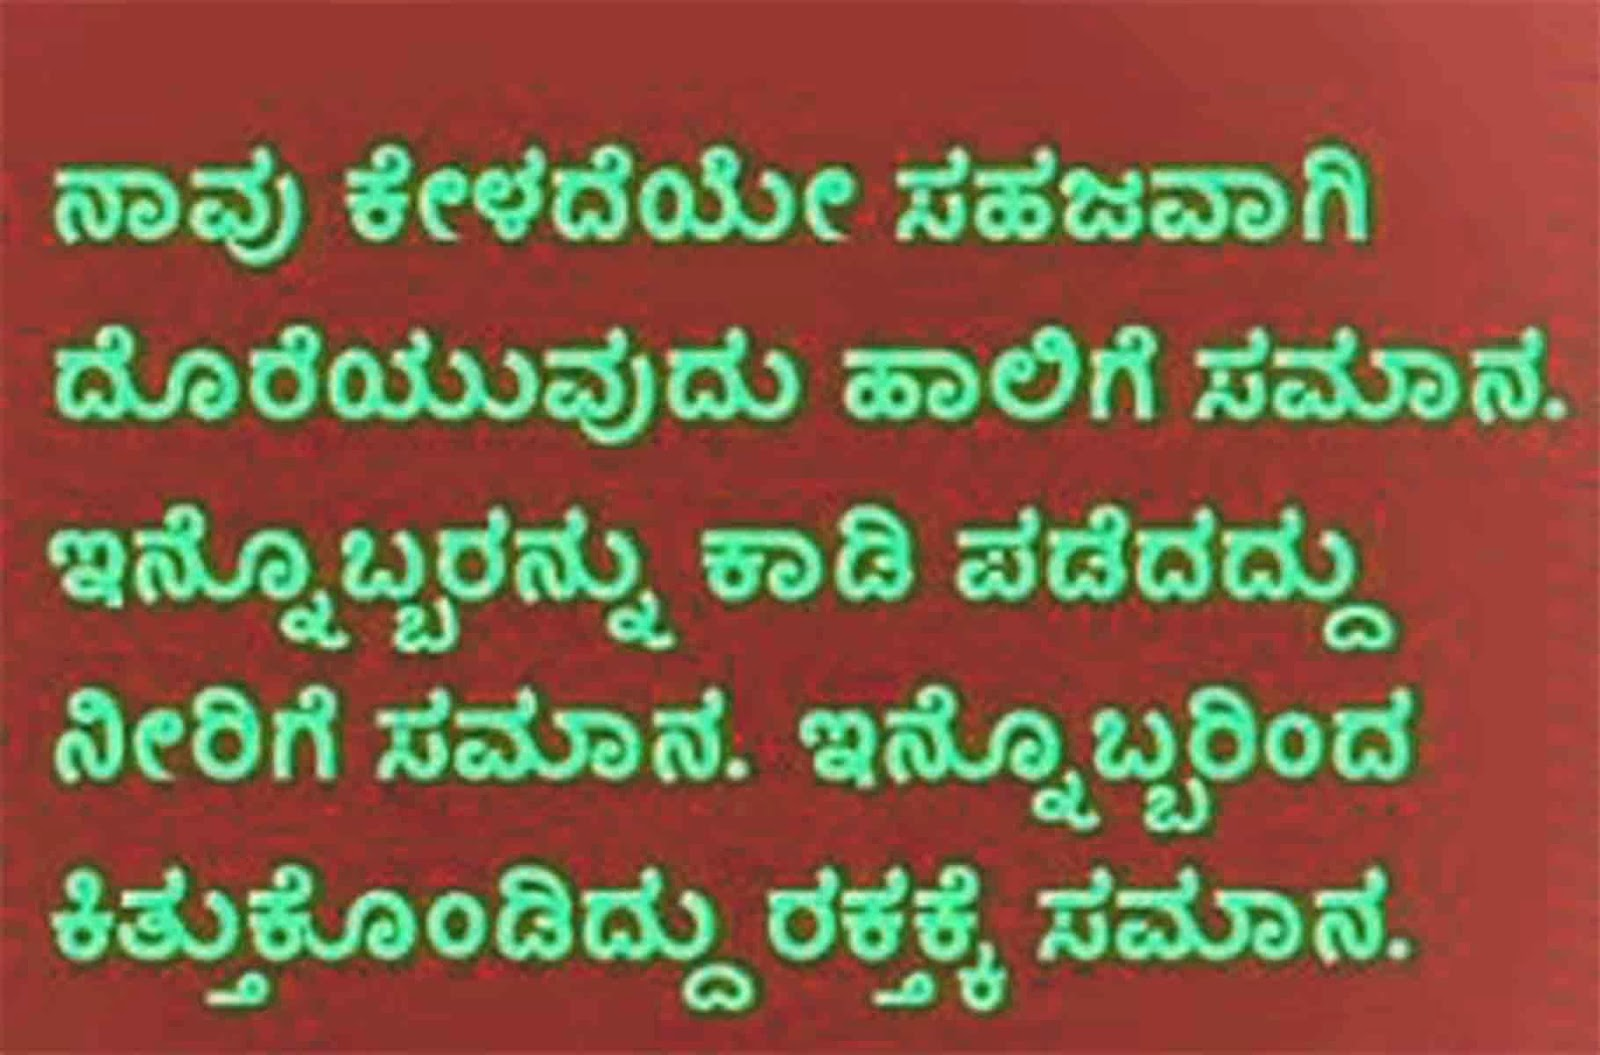 Love Quotes Wallpaper In Kannada : cute Love Quotes In Kannada: Romantic love quotes for her ...